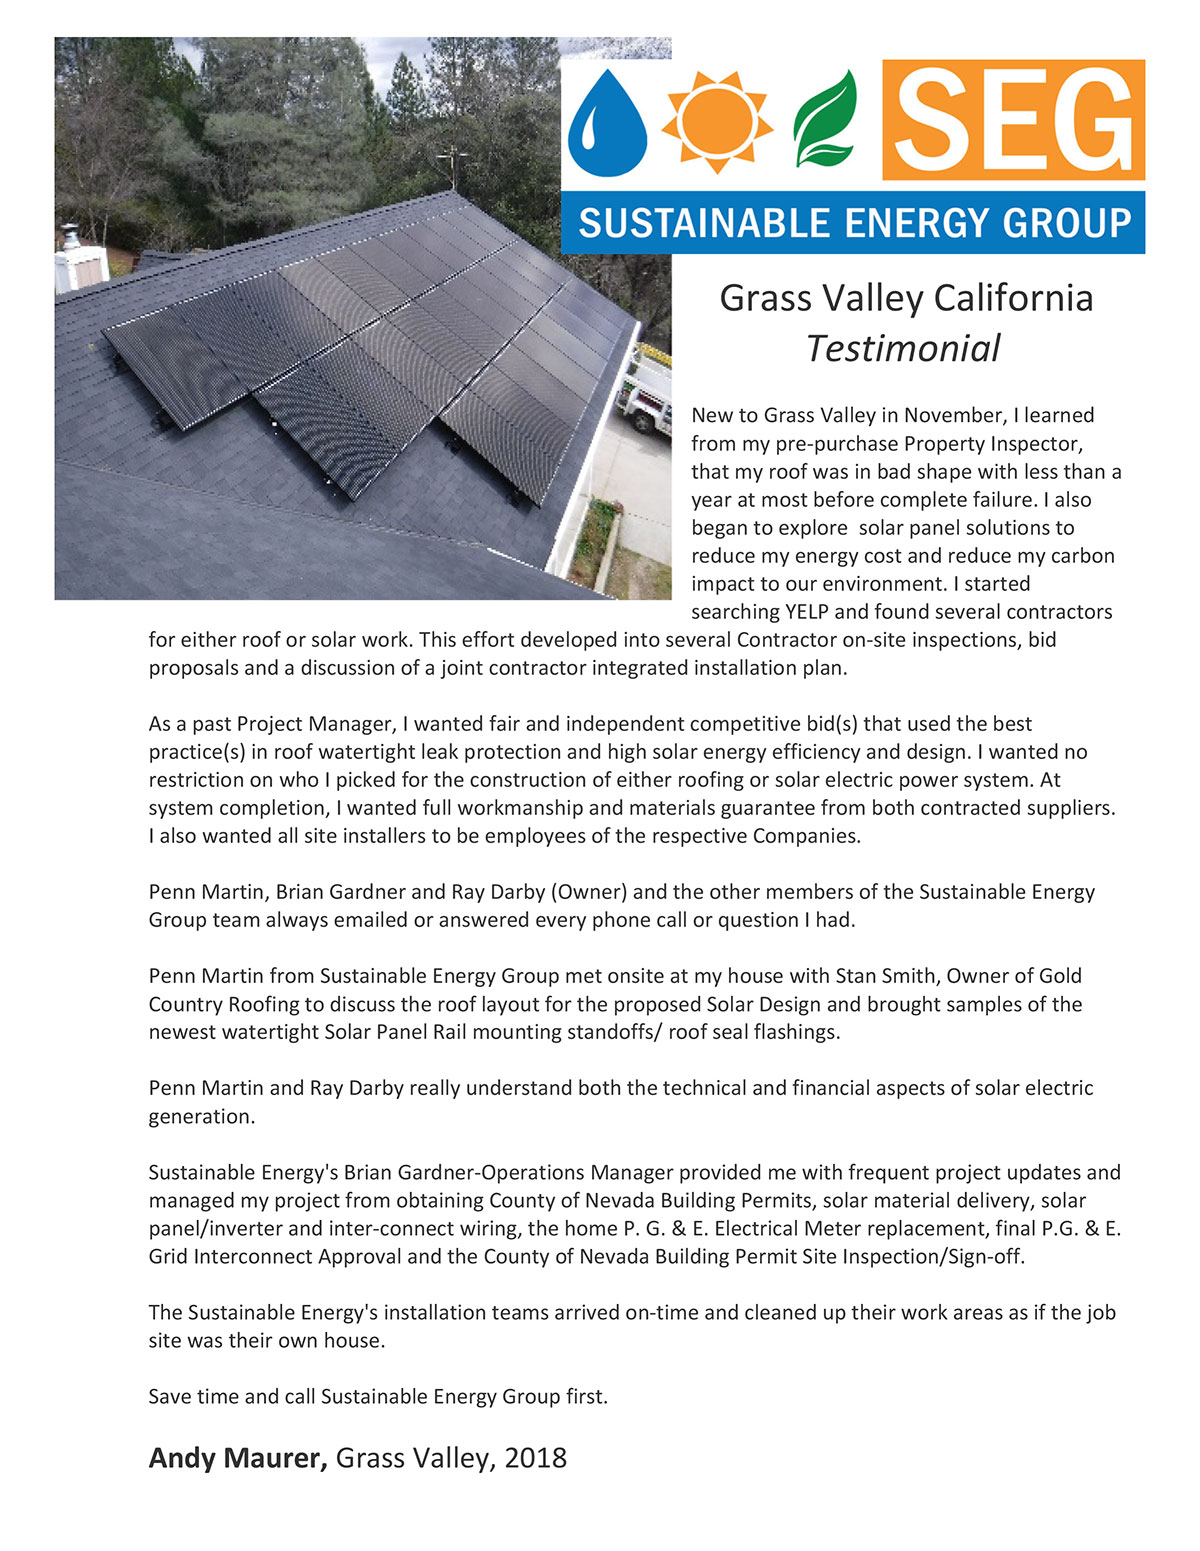 Residential Solar - Sustainable Energy Group